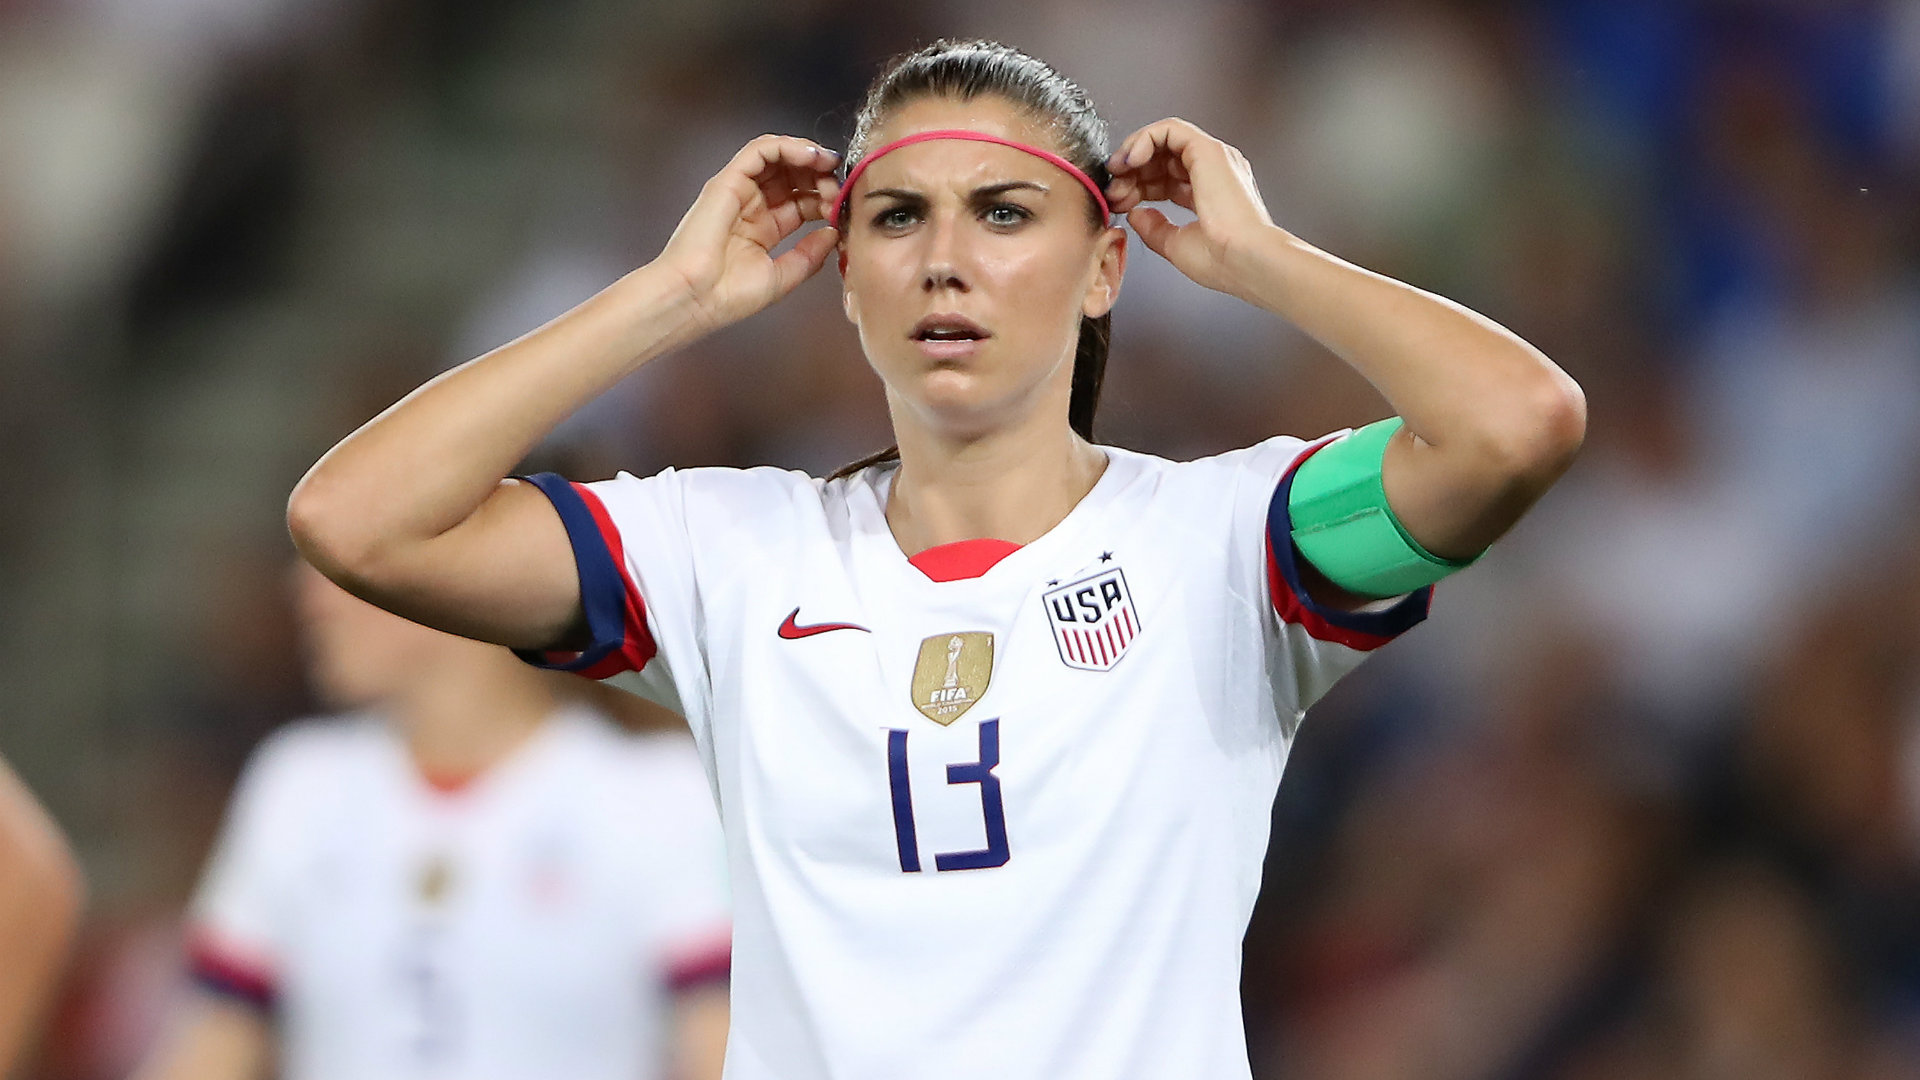 USWNT star Morgan's Tottenham debut delayed by weeks due to setback